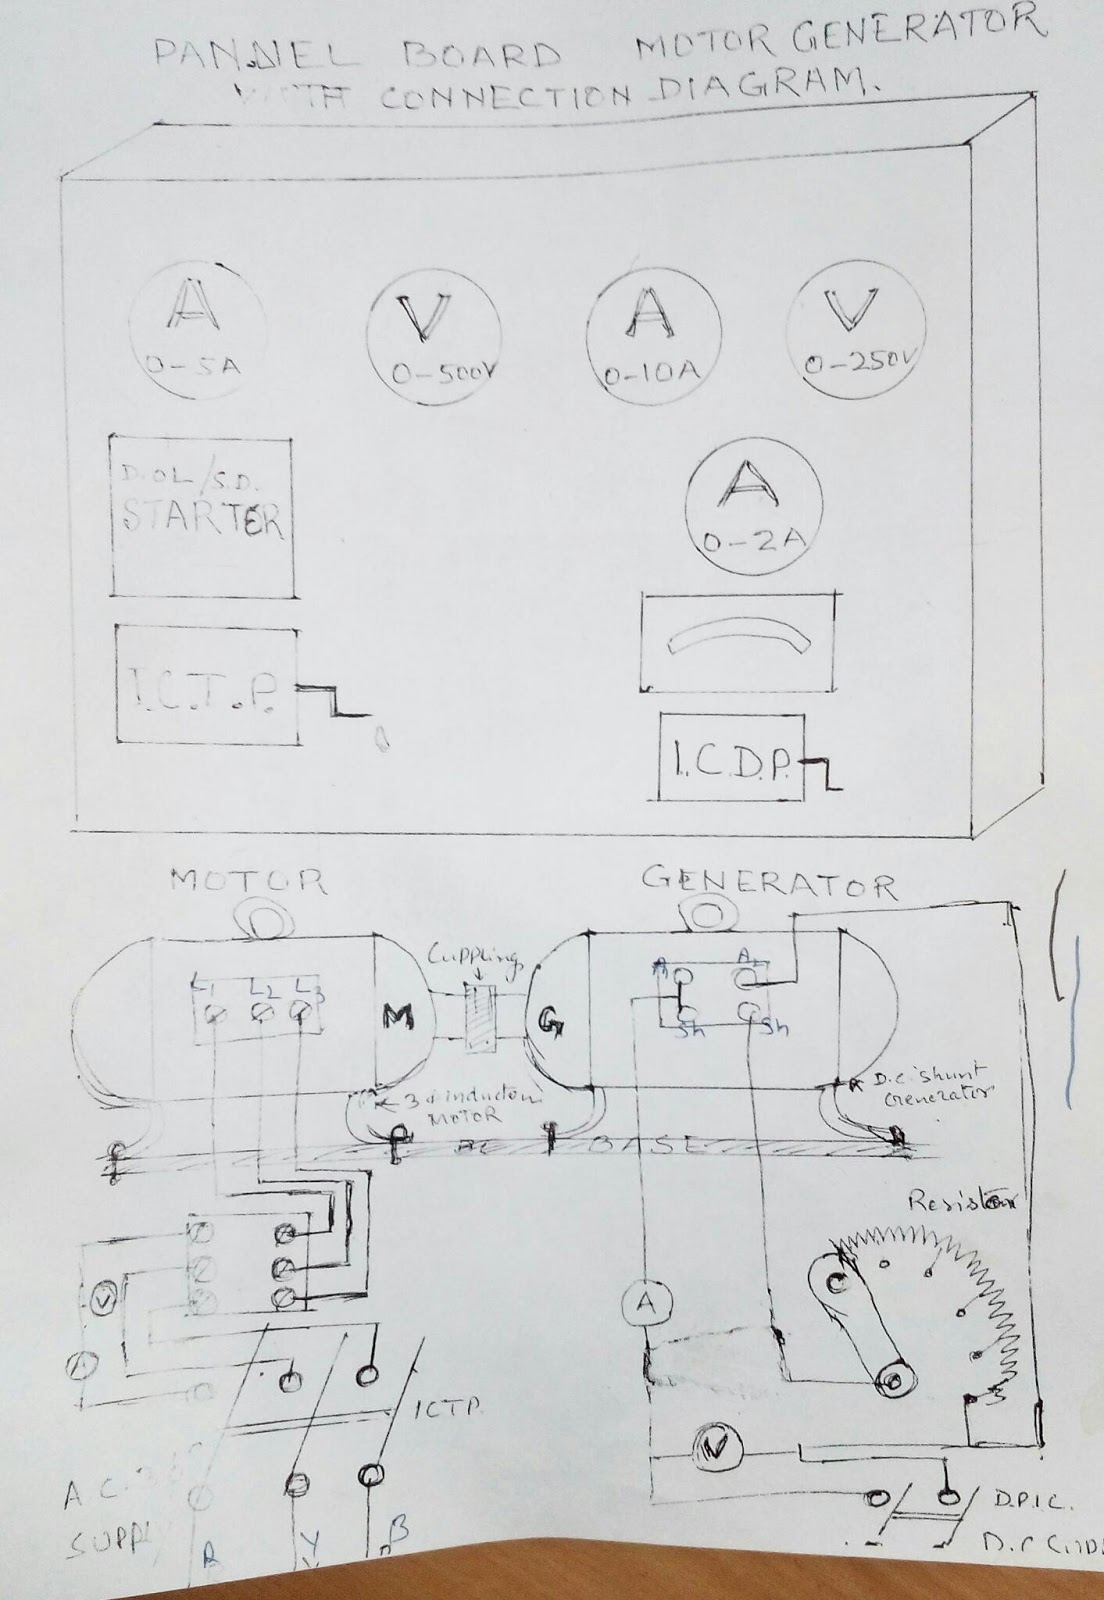 IMG_20160223_152851_045 motor generator circuit diagram mg set control panel cti generator control panel wiring diagram at gsmportal.co